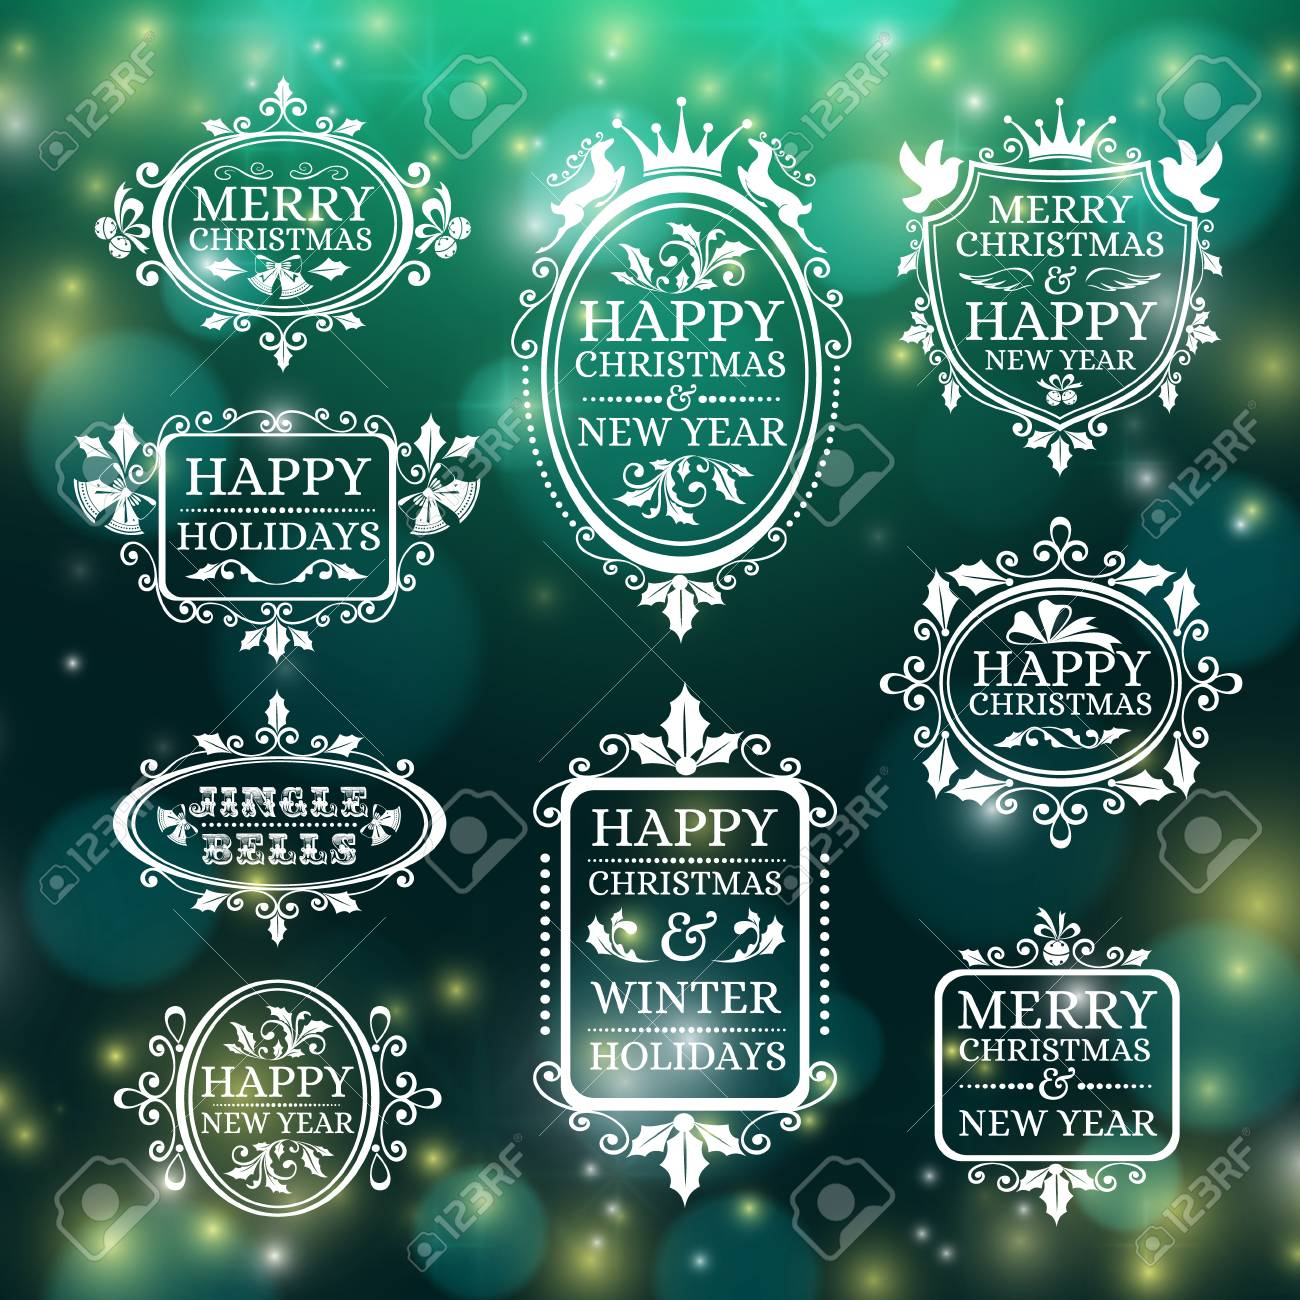 Set Of Christmas Decorations, Holiday Frames With Wishes Royalty ...